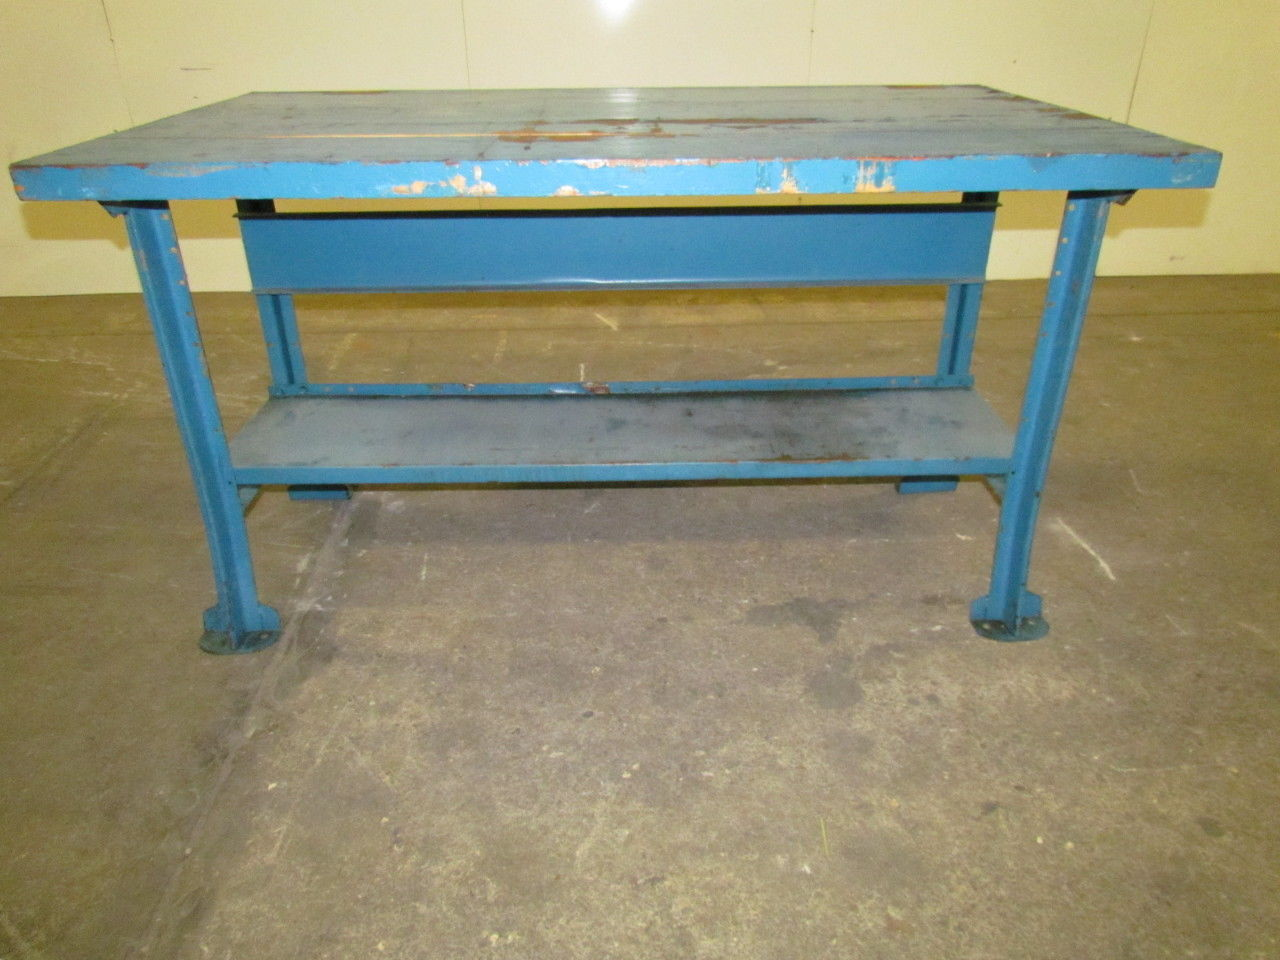 Vintage industrial butcher block workbench table reloading bench 60x30x34 30 bench